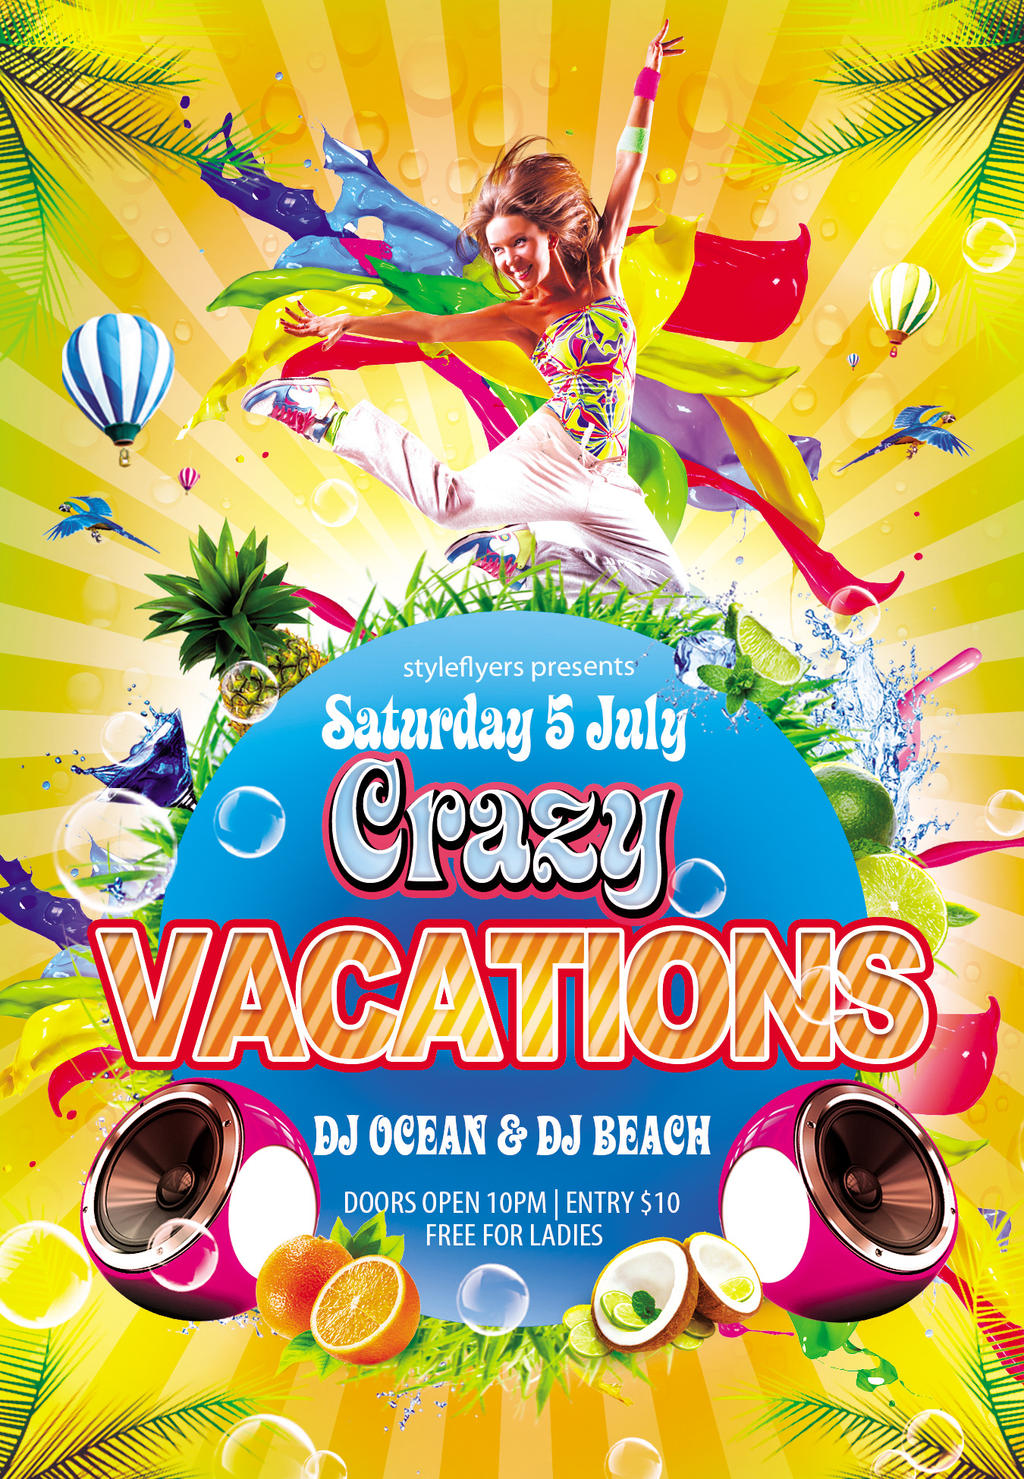 crazy vacations party flyerstyleflyers on deviantart